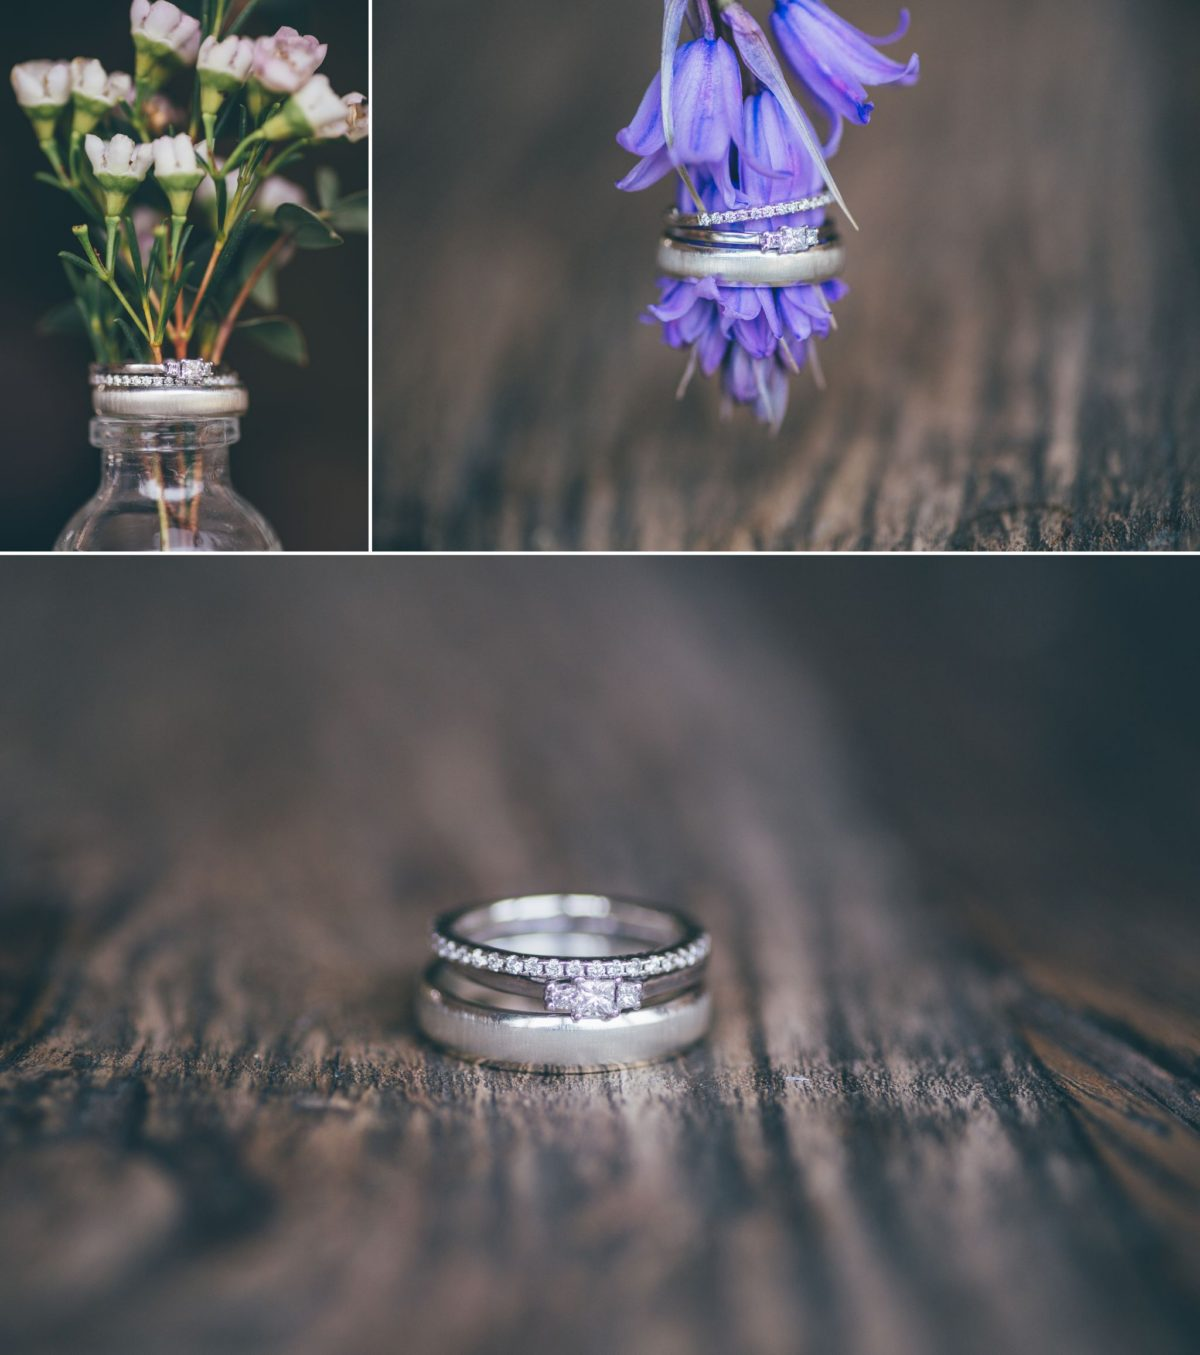 cripps_barn_gloucesterhsire_welsh_wedding_photographer_rachel_lambert_photography_jordan_amy_ 116